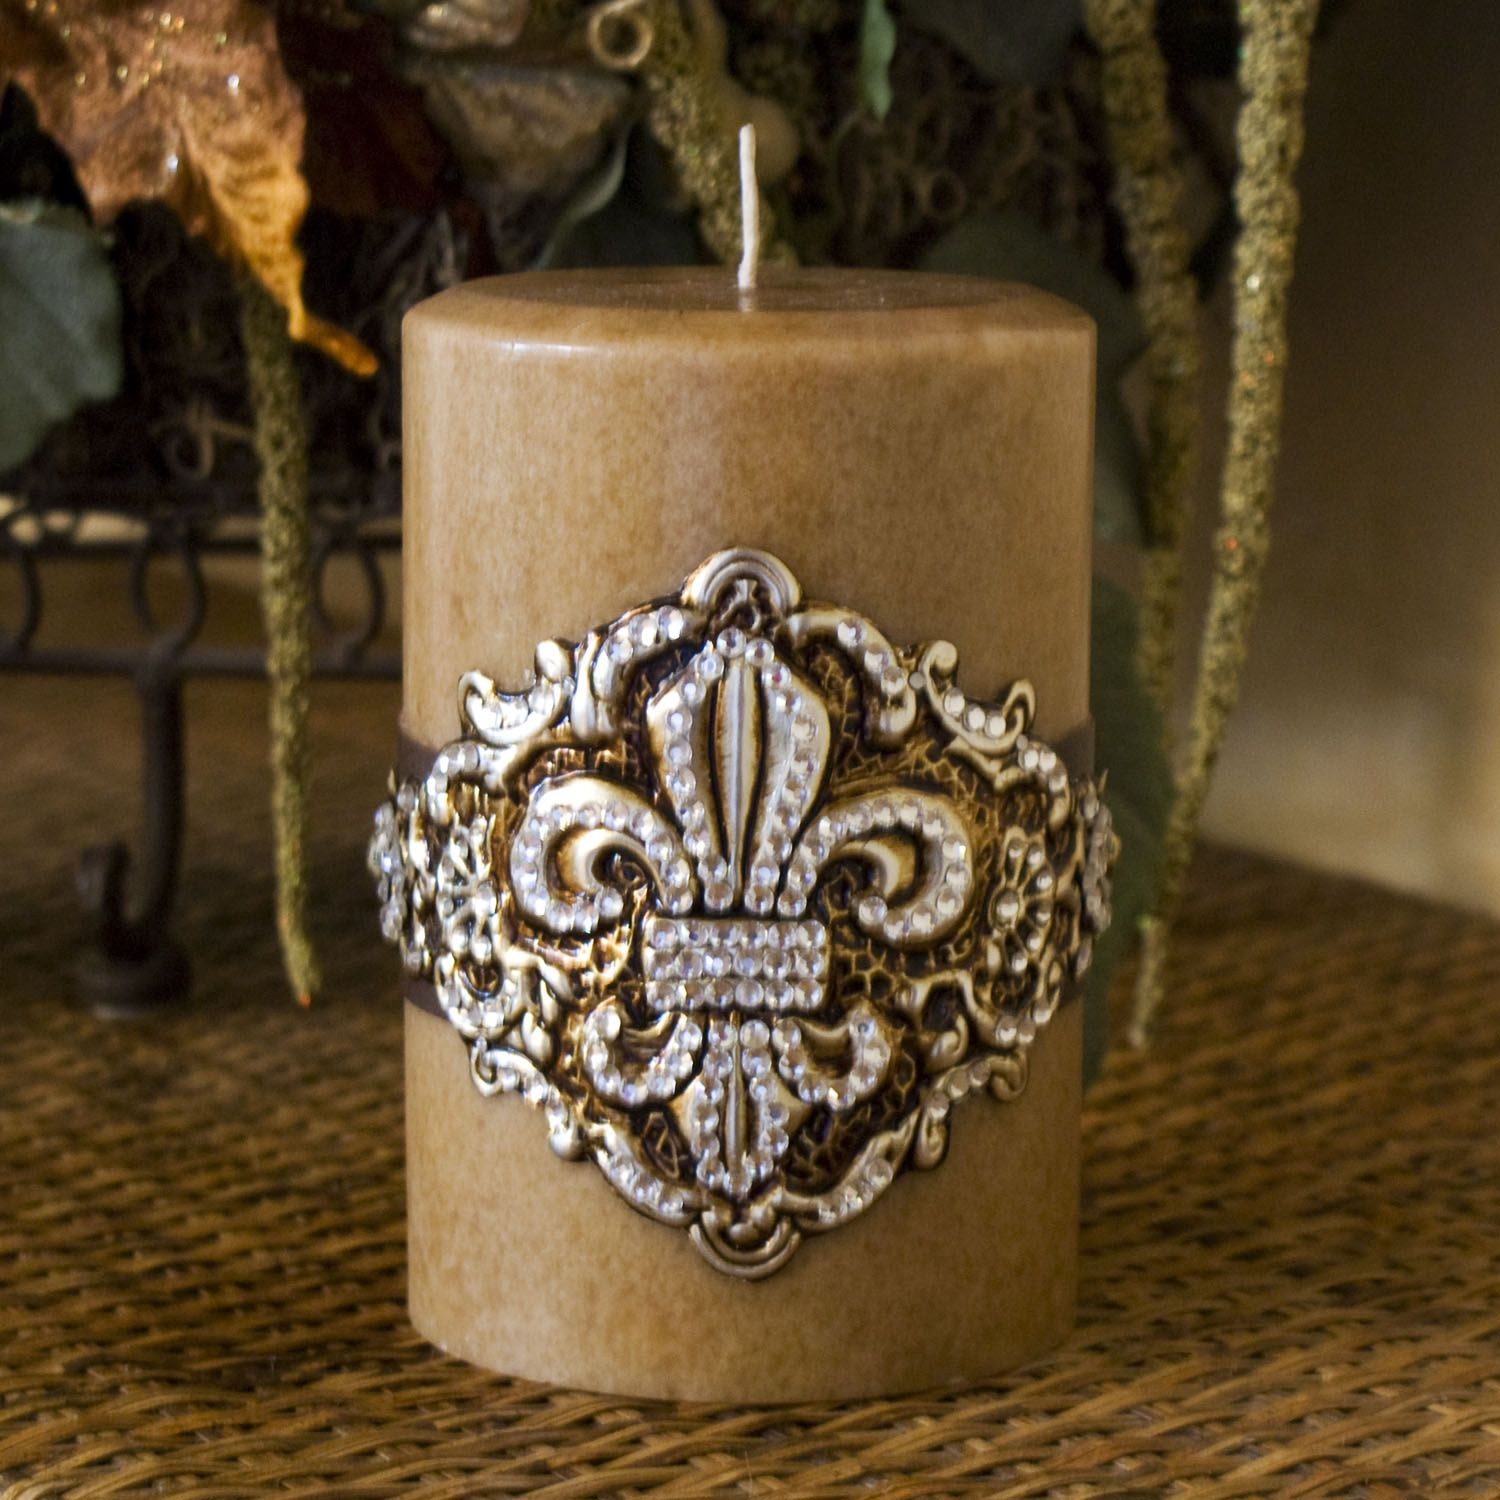 Swarovski Candle Fleur De Lis Home Decor Pillar Crystal